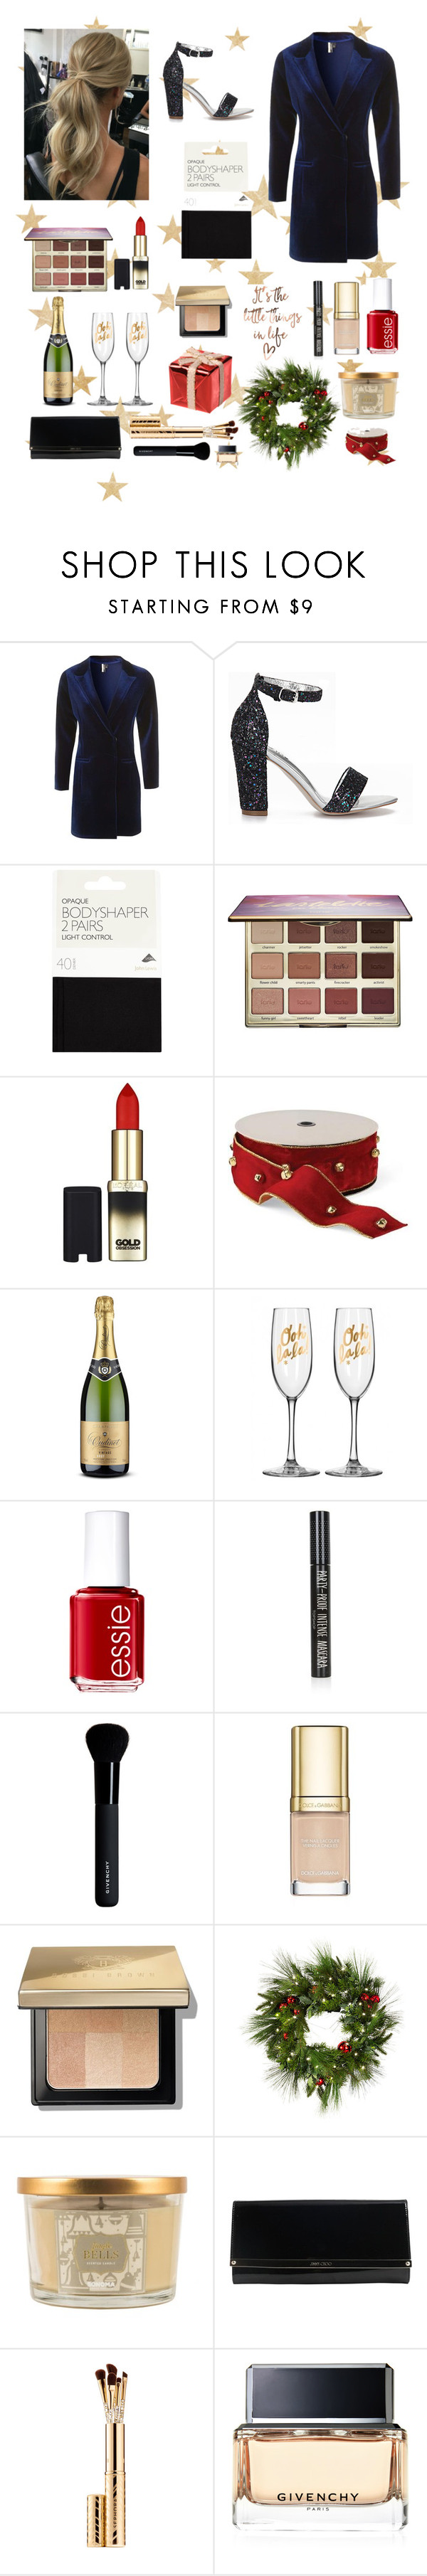 """""""Holiday party #1"""" by micalkalimi on Polyvore featuring Topshop, John Lewis, tarte, L'Oréal Paris, Essie, Givenchy, Dolce&Gabbana, Bobbi Brown Cosmetics, Improvements and SONOMA Goods for Life"""